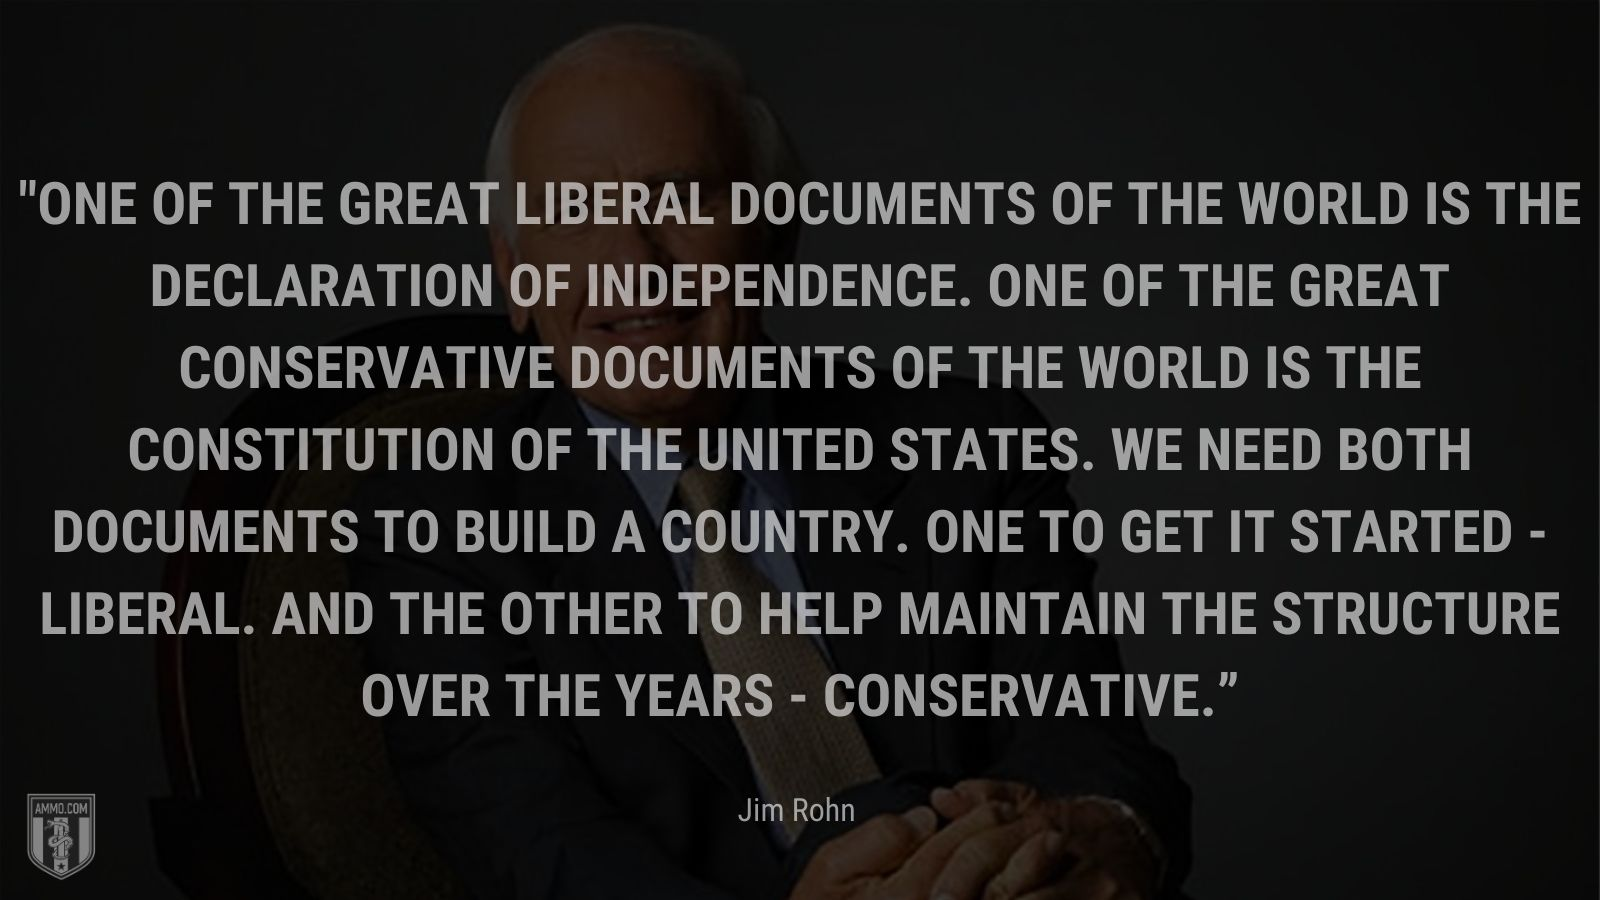 """""""One of the great liberal documents of the world is the Declaration of Independence. One of the great conservative documents of the world is the Constitution of the United States. We need both documents to build a country. One to get it started - liberal. And the other to help maintain the structure over the years - conservative."""" - Jim Rohn"""